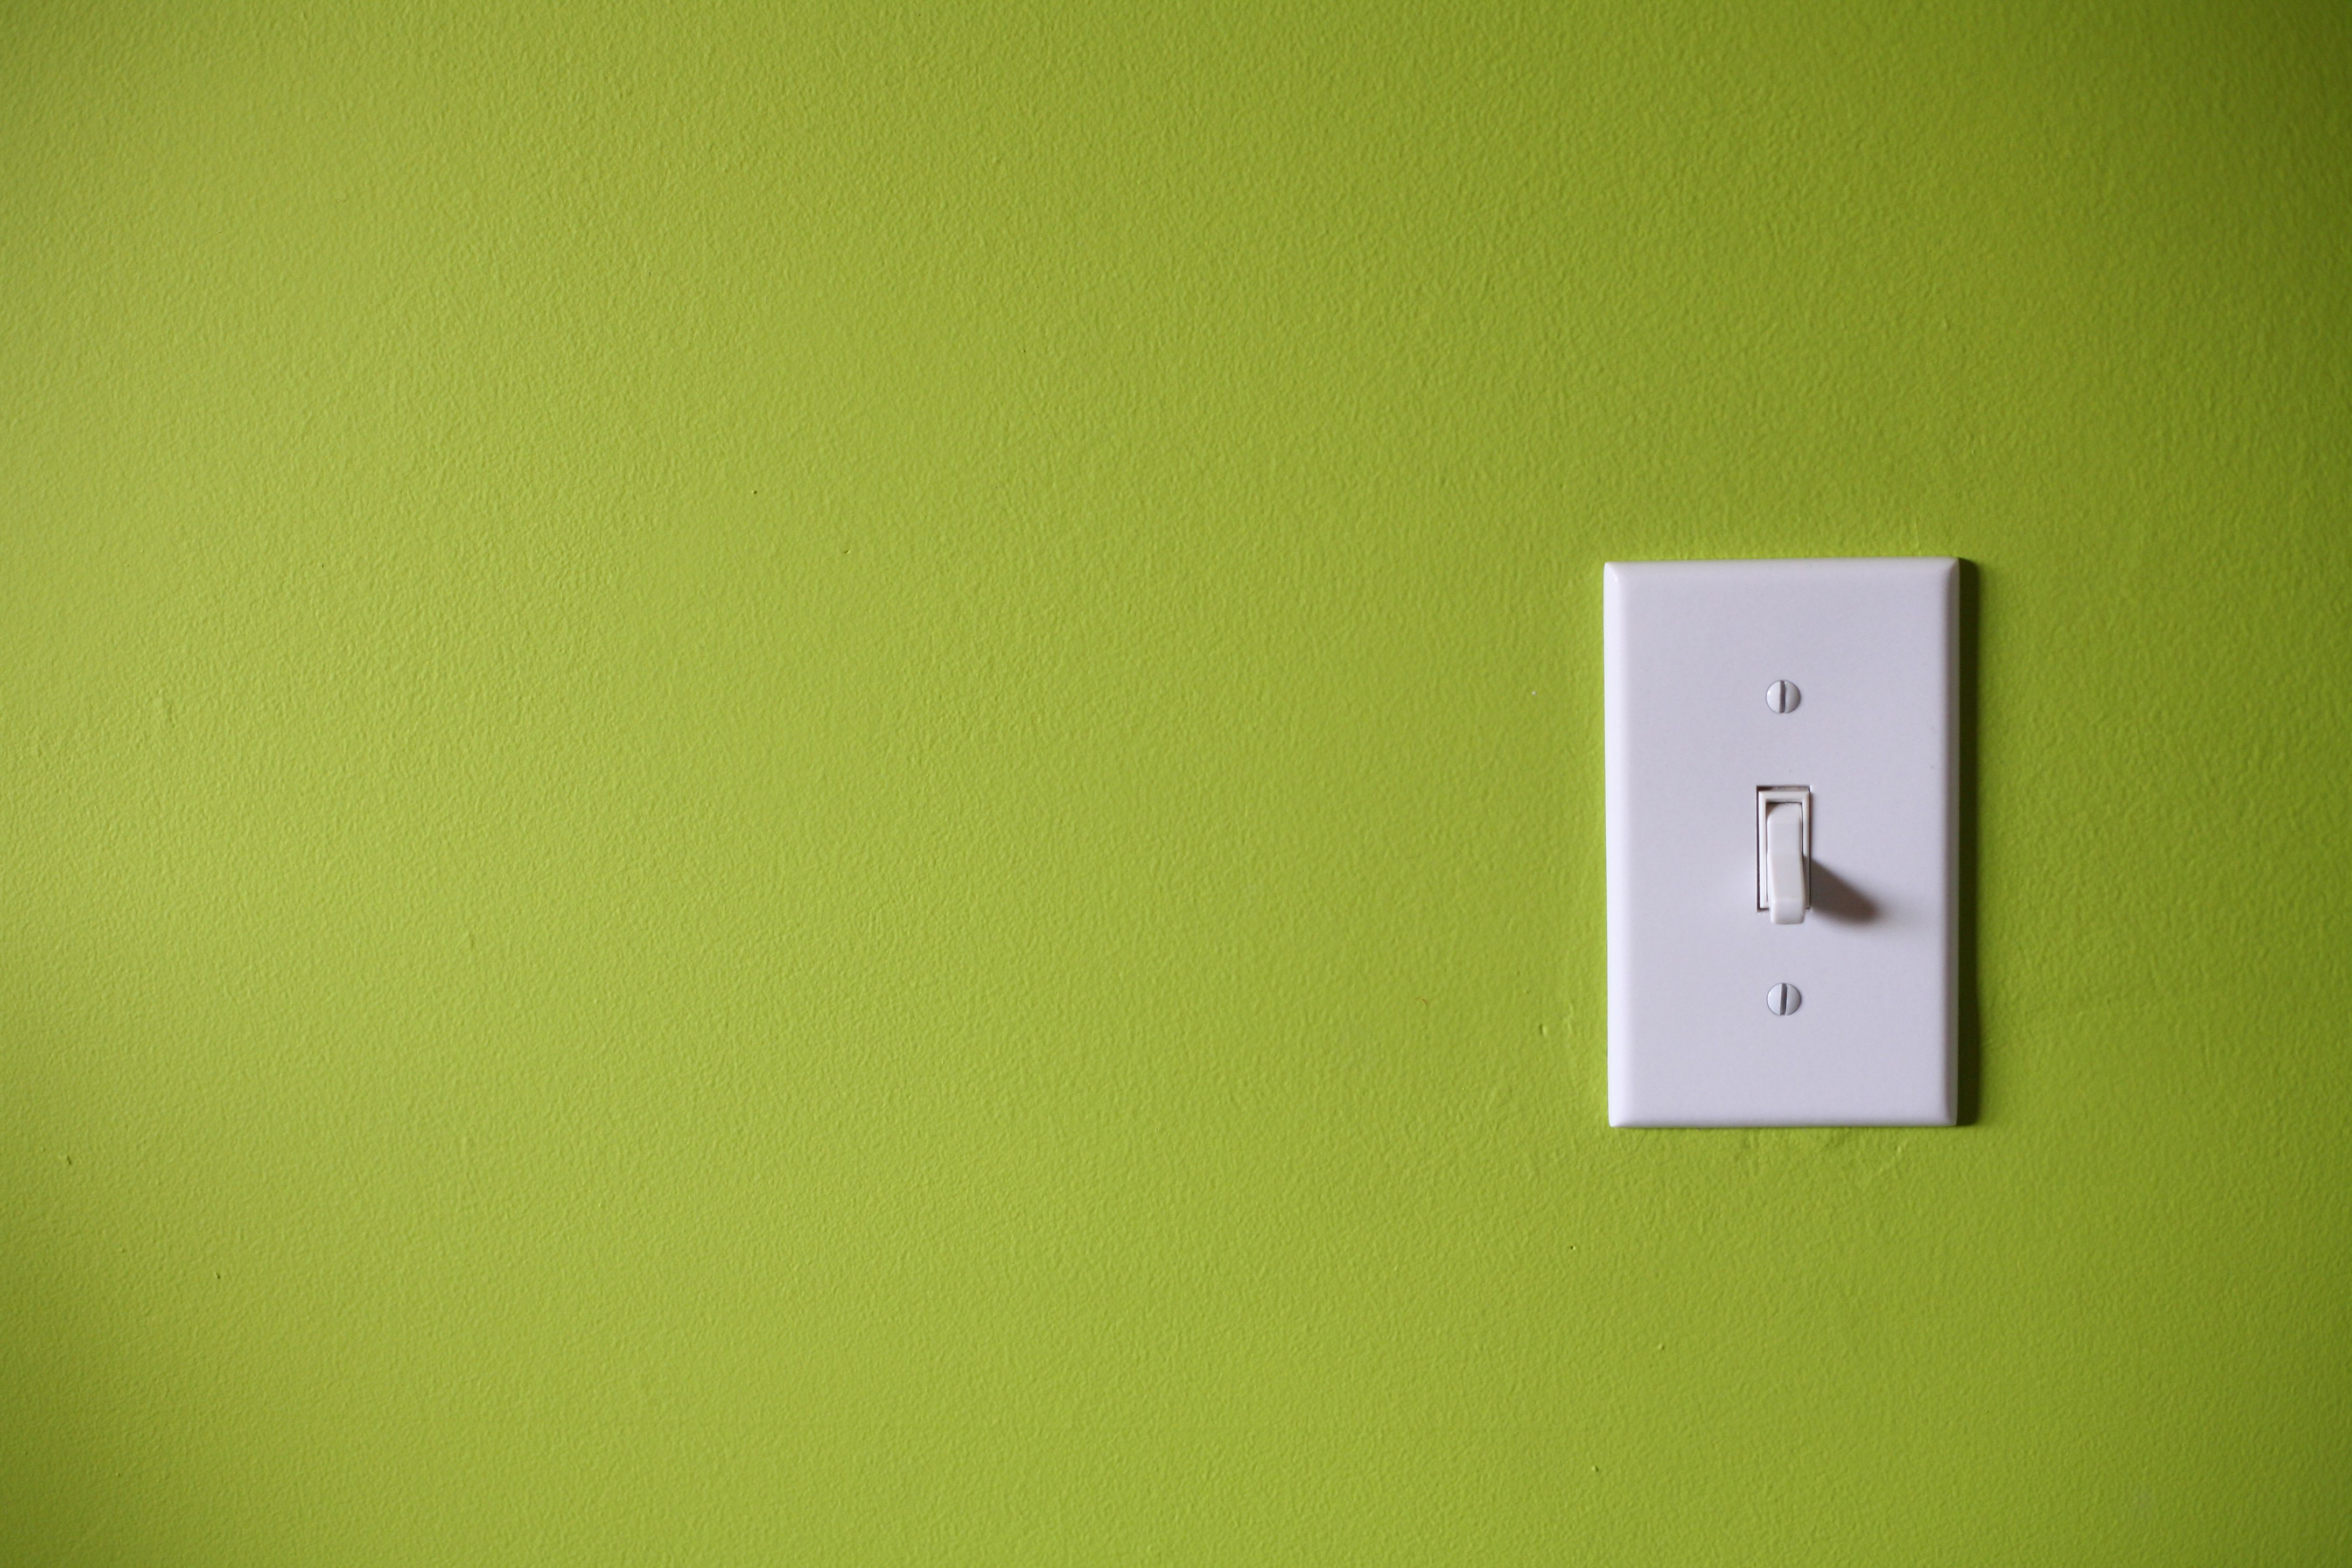 symptoms of a defective wall switch. Black Bedroom Furniture Sets. Home Design Ideas